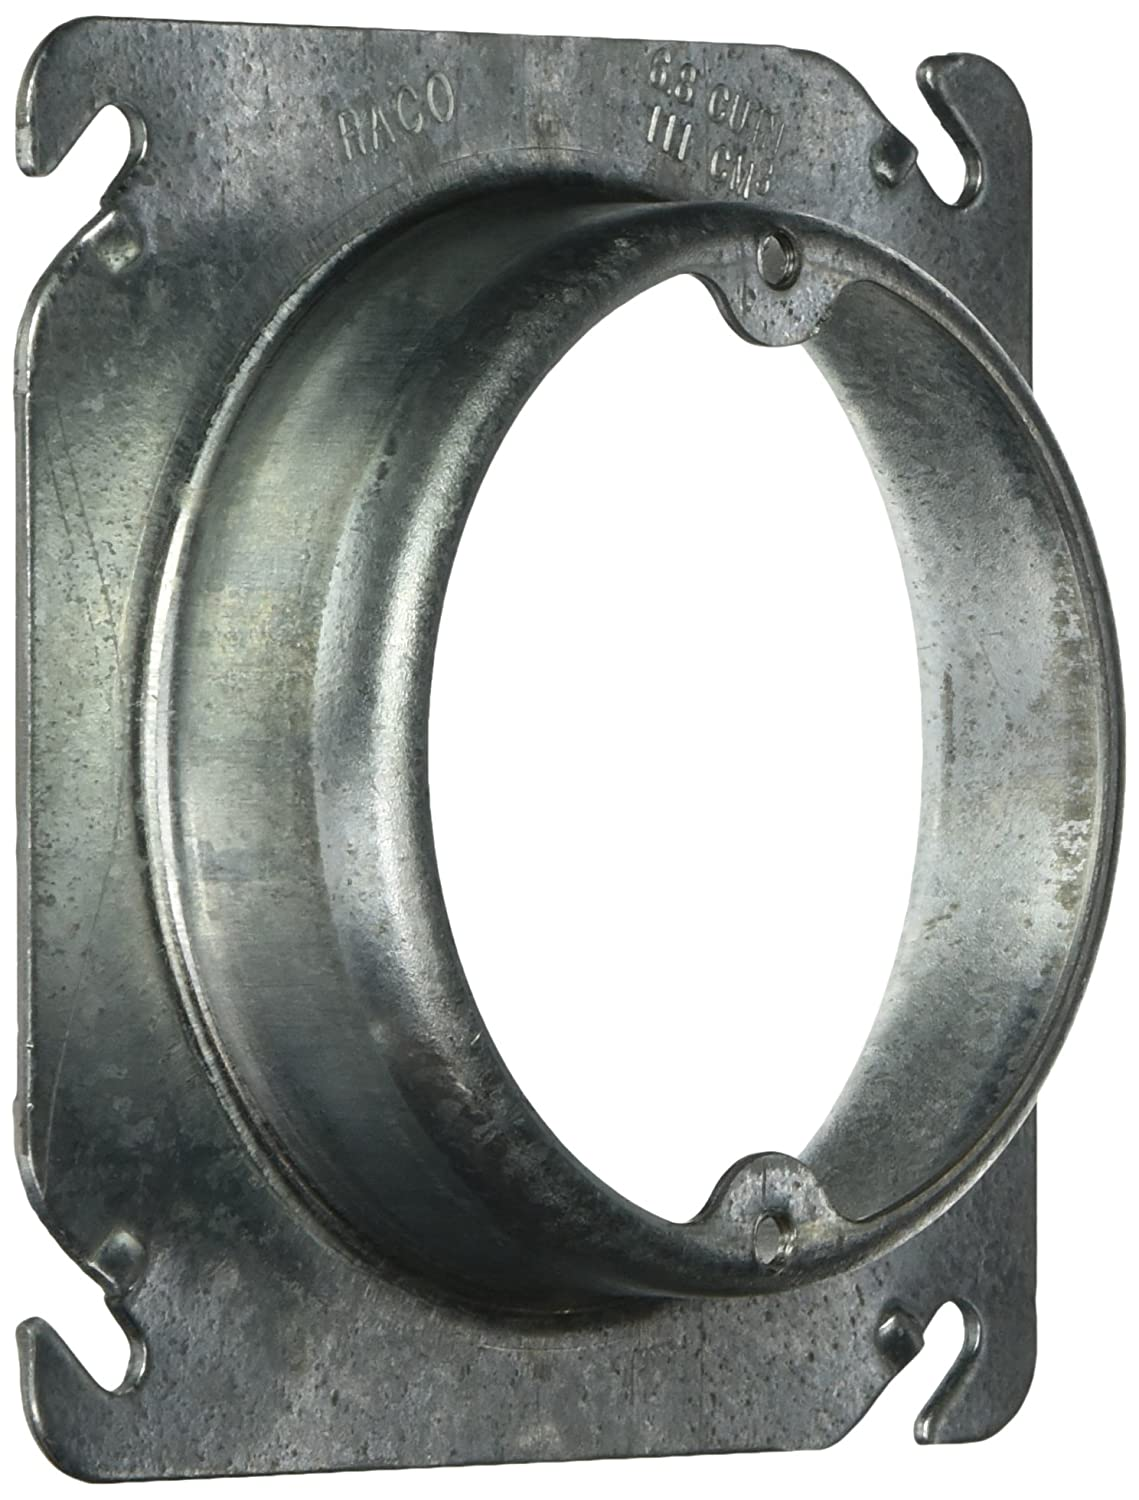 Hubbell Raco 757 Drawn Square Mud Ring for Fixtures with Raised 1 Inch and Open Ears 4 Inch